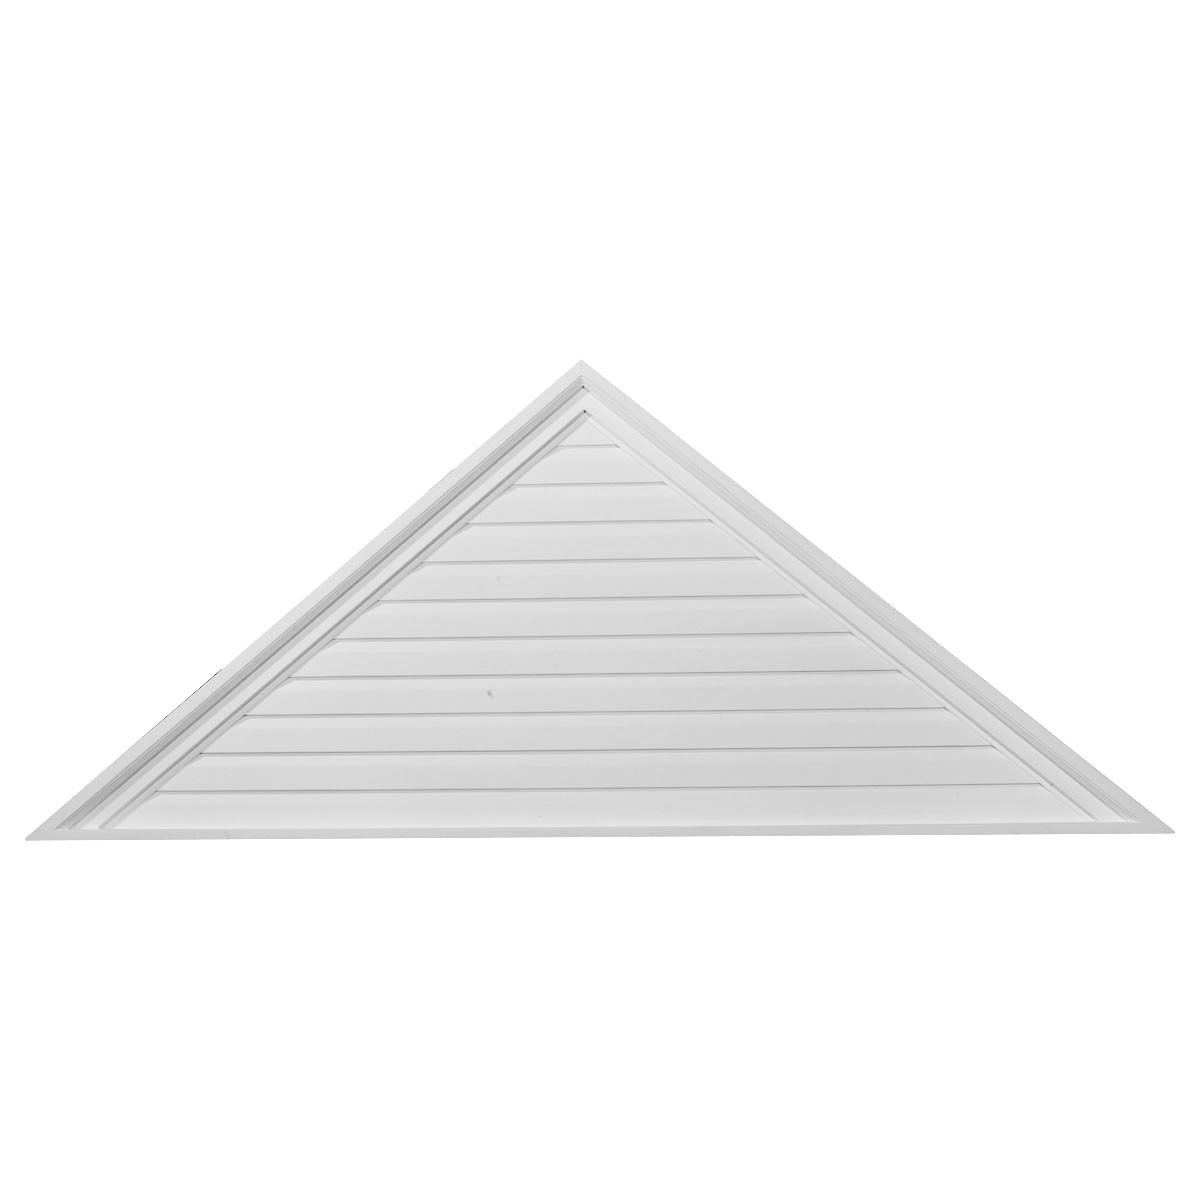 """EM-GVTR48X24F - 48""""W x 24""""H x 2 1/4""""P,  Pitch 12/12 Triangle Gable Vent, Functional"""